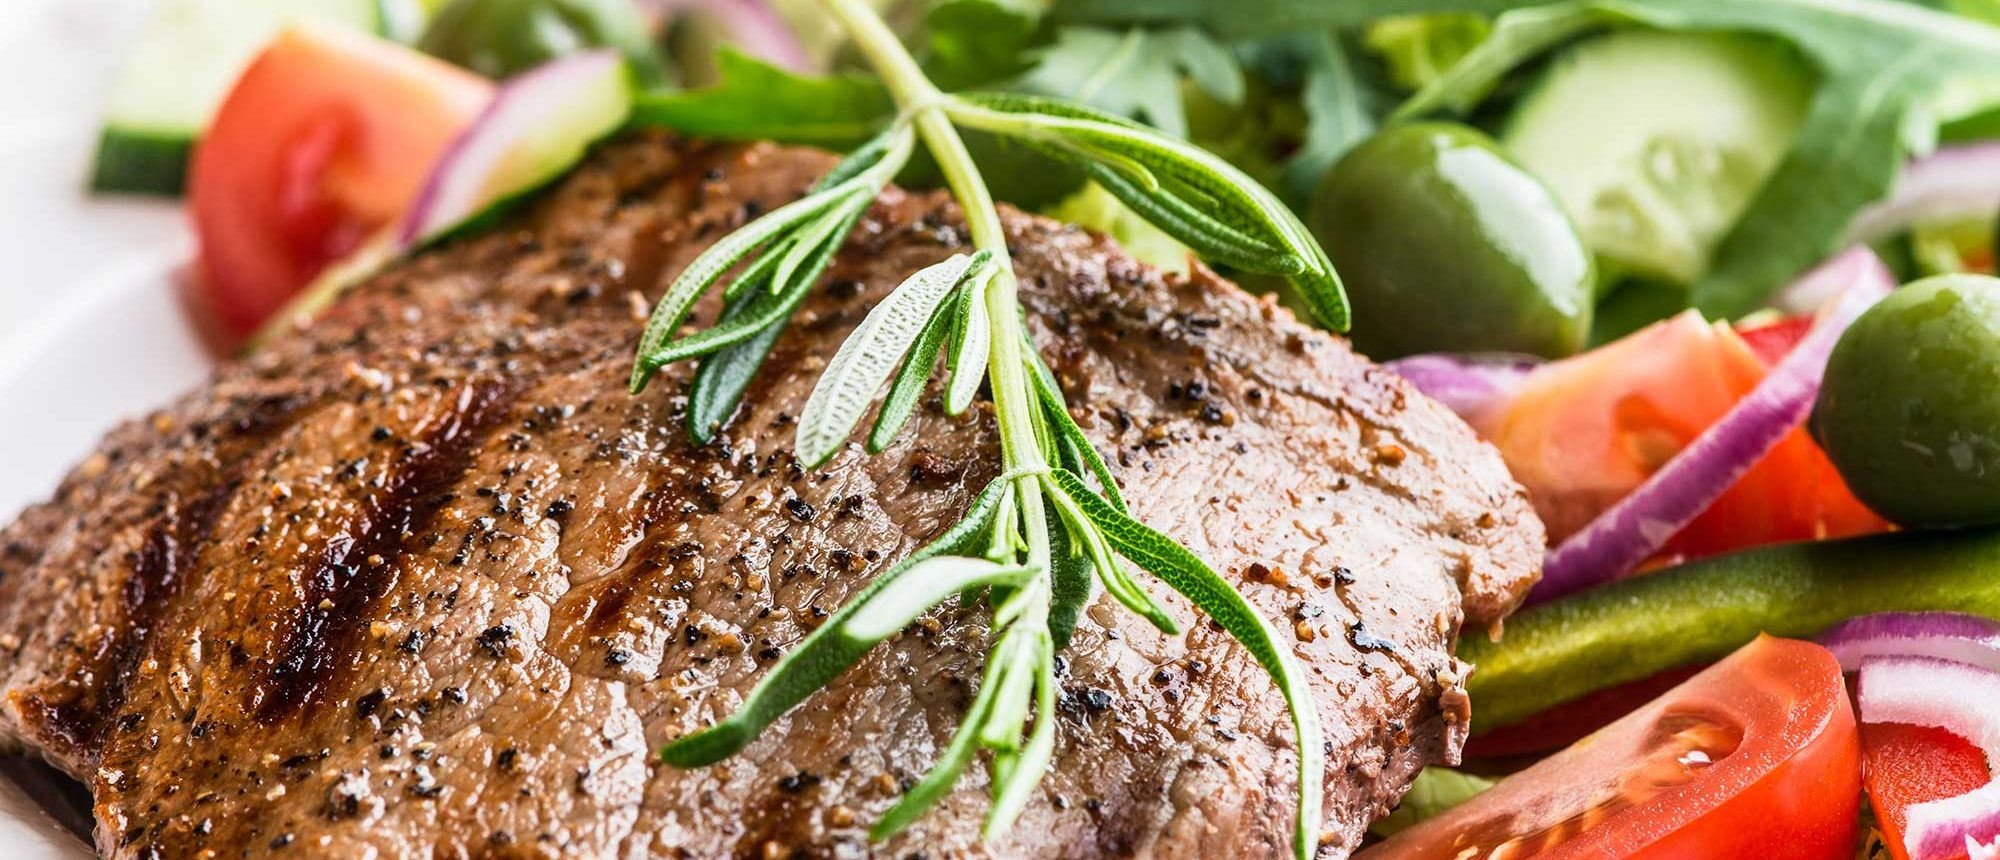 Grilled beef steak with salad and rosemary sprig.